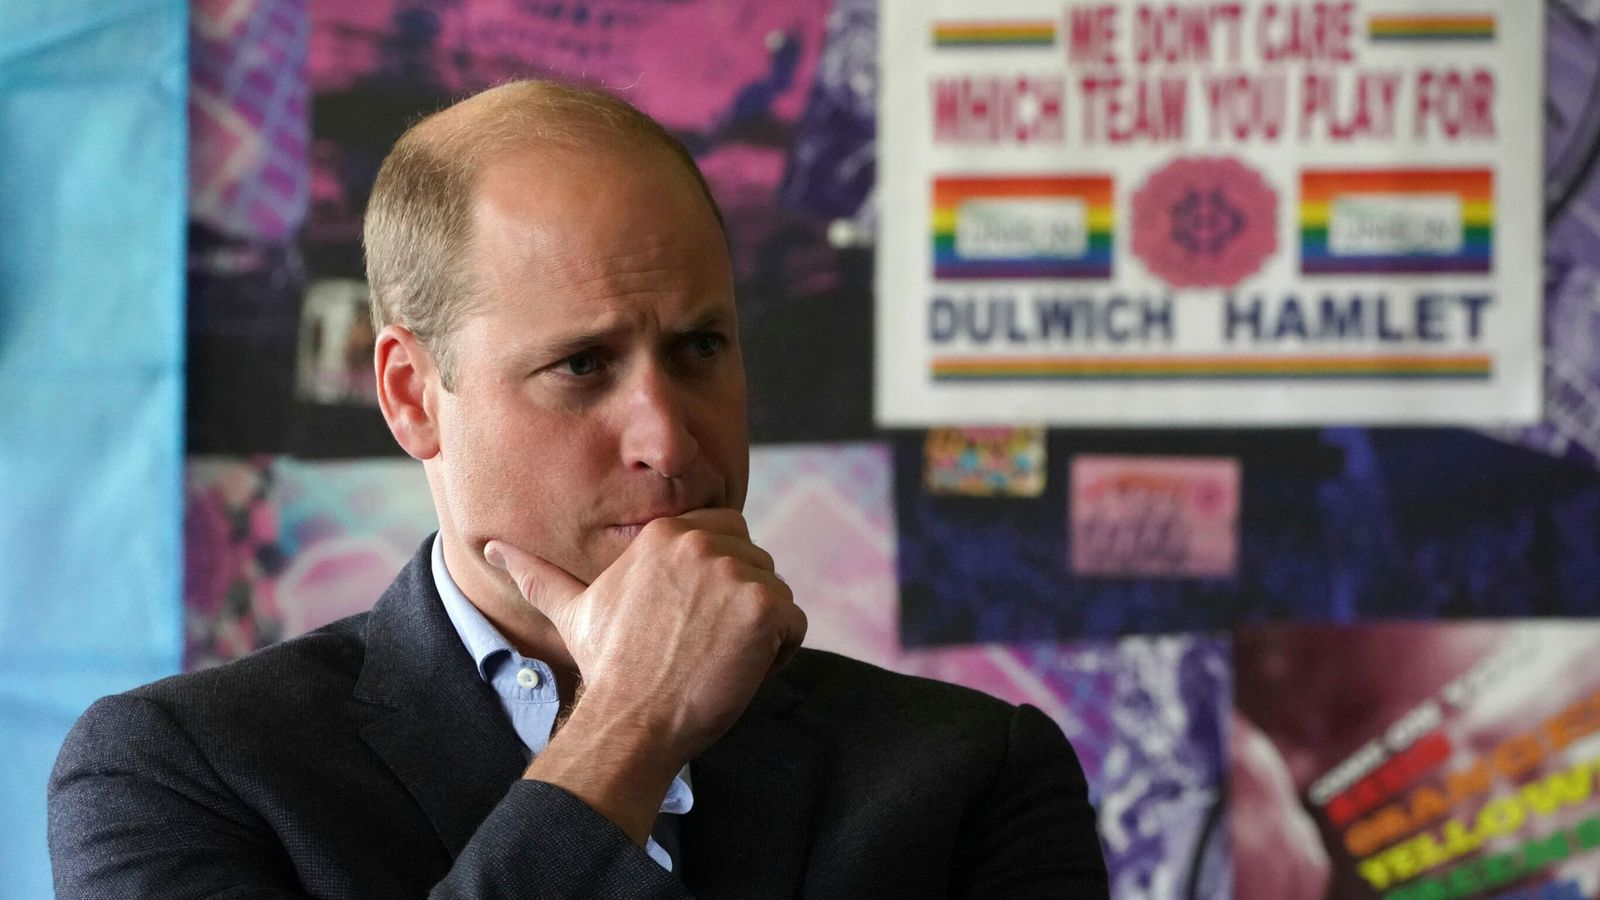 Prince William backs grassroots football fans